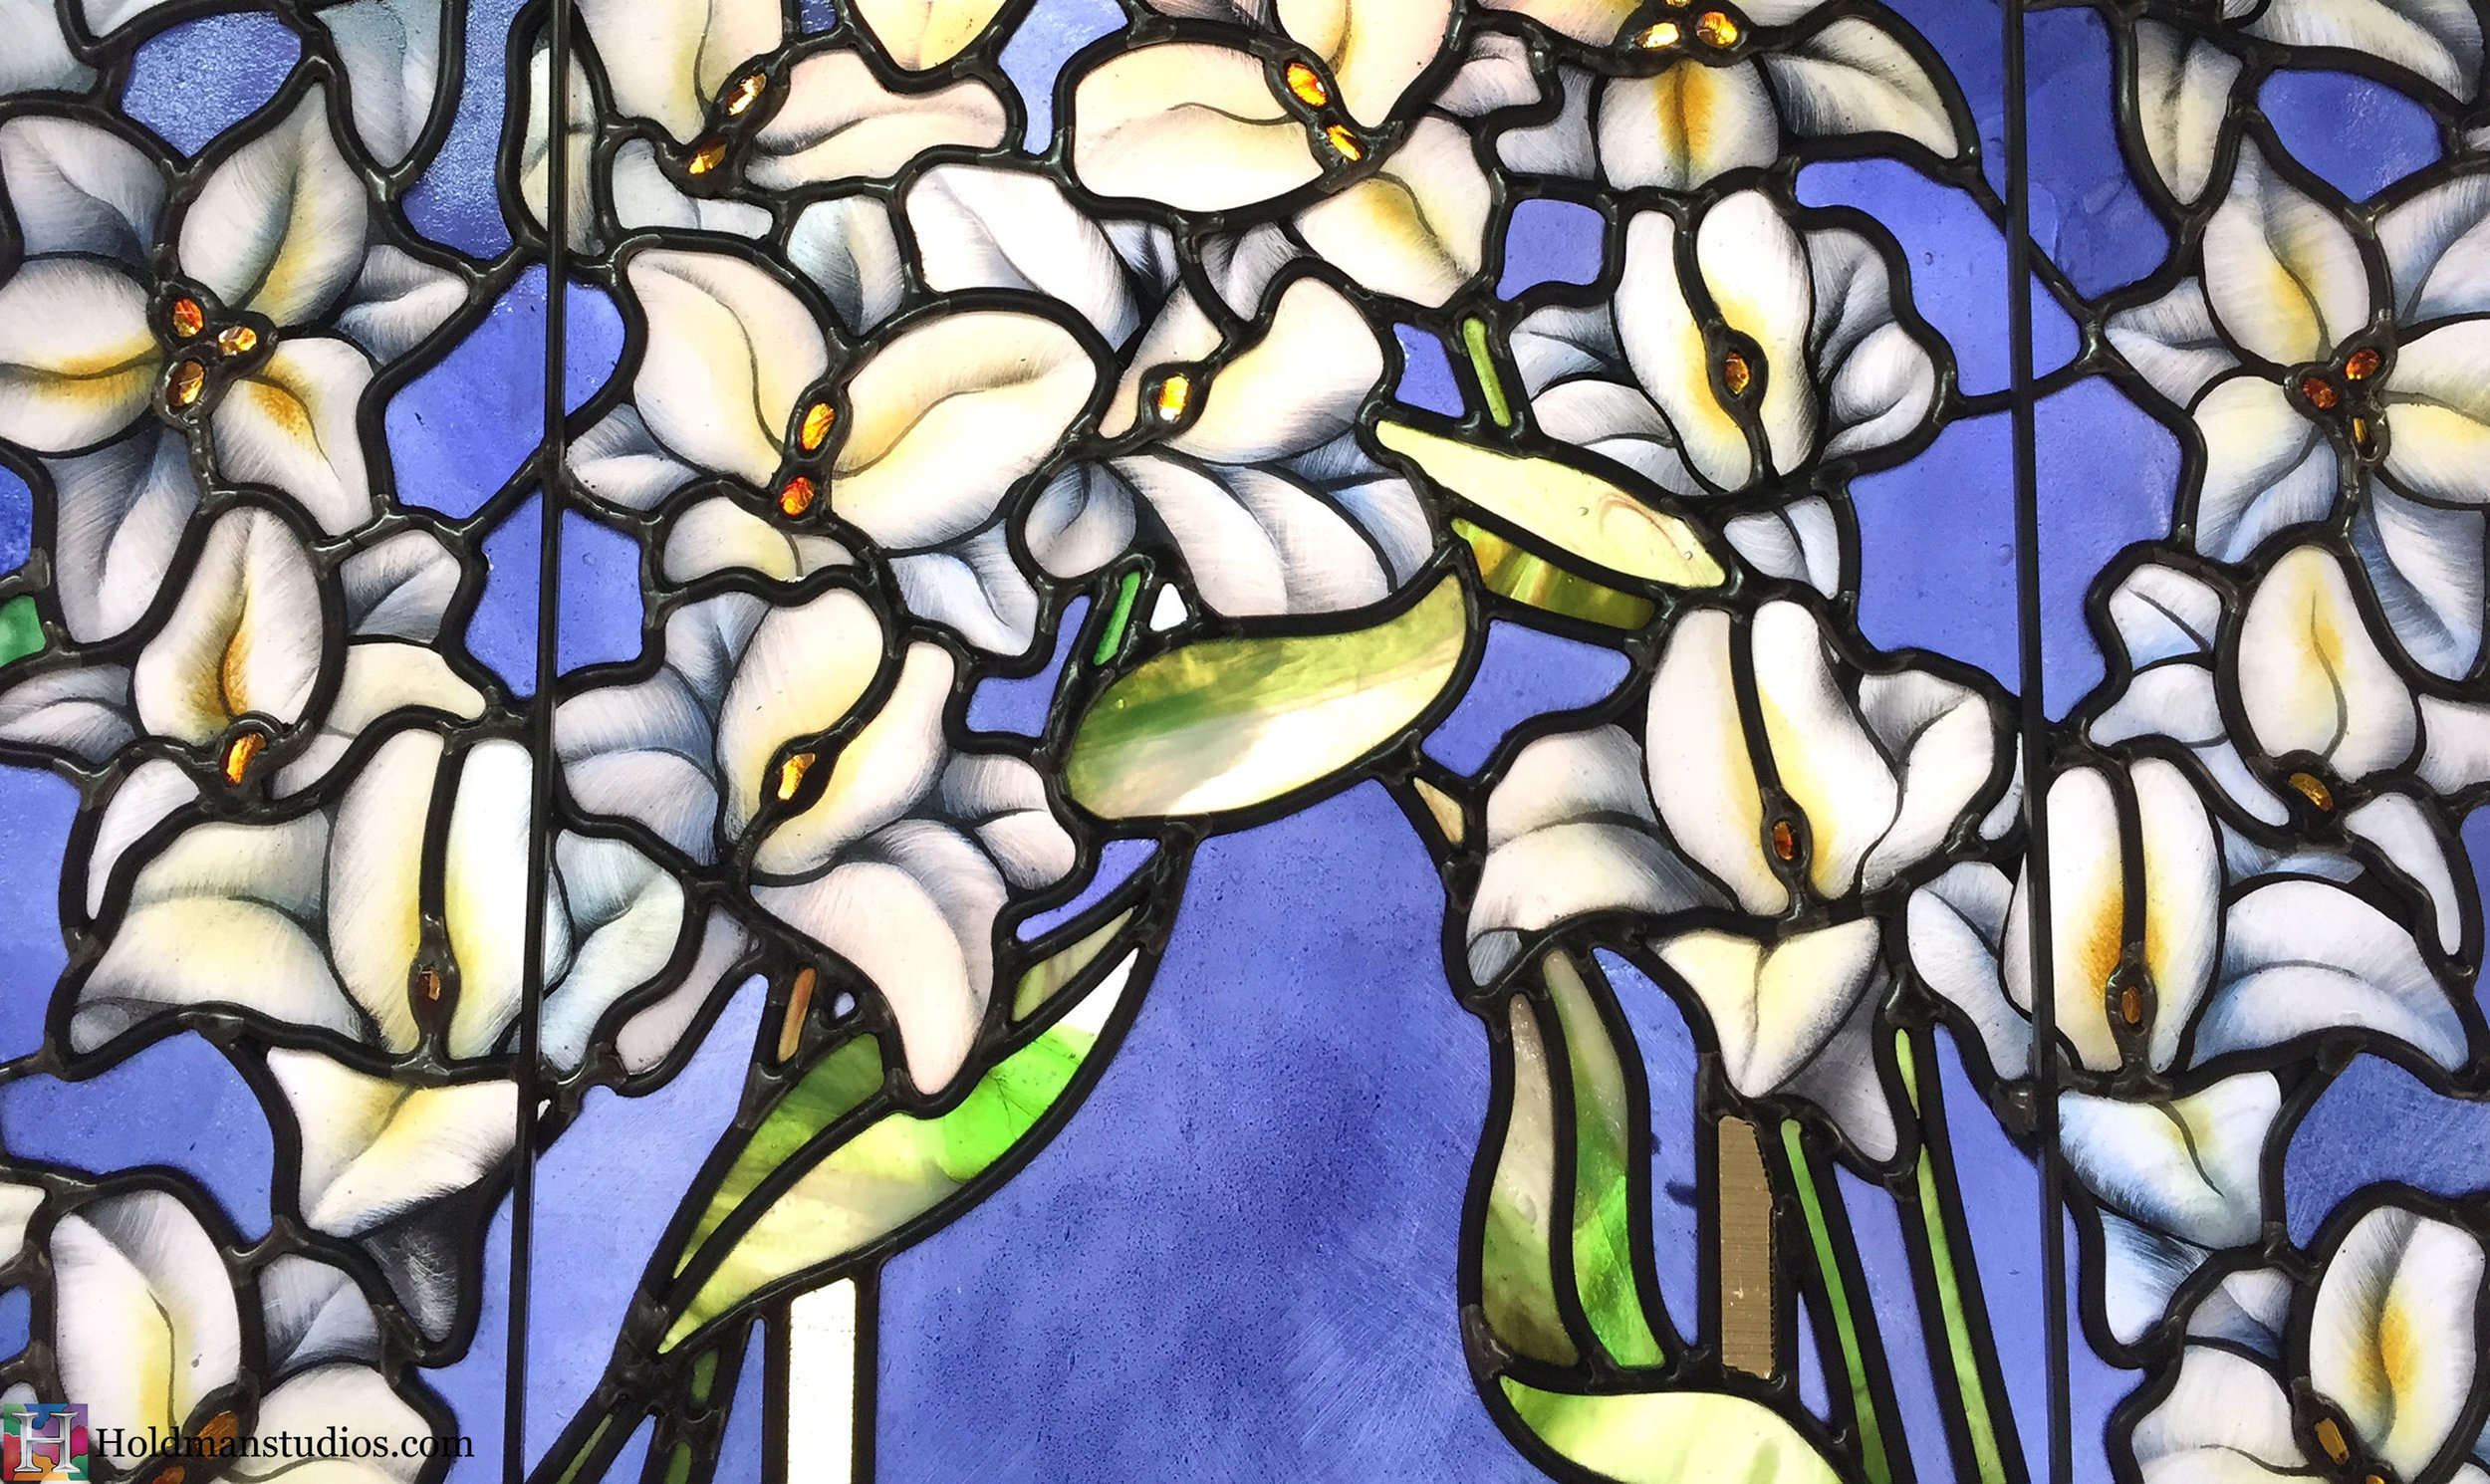 Holdman-Studios-Stained-Glass-Paris-LDS-Temple-Madonna-Lily-Flowers-Leaves-Closeup-Window.jpg